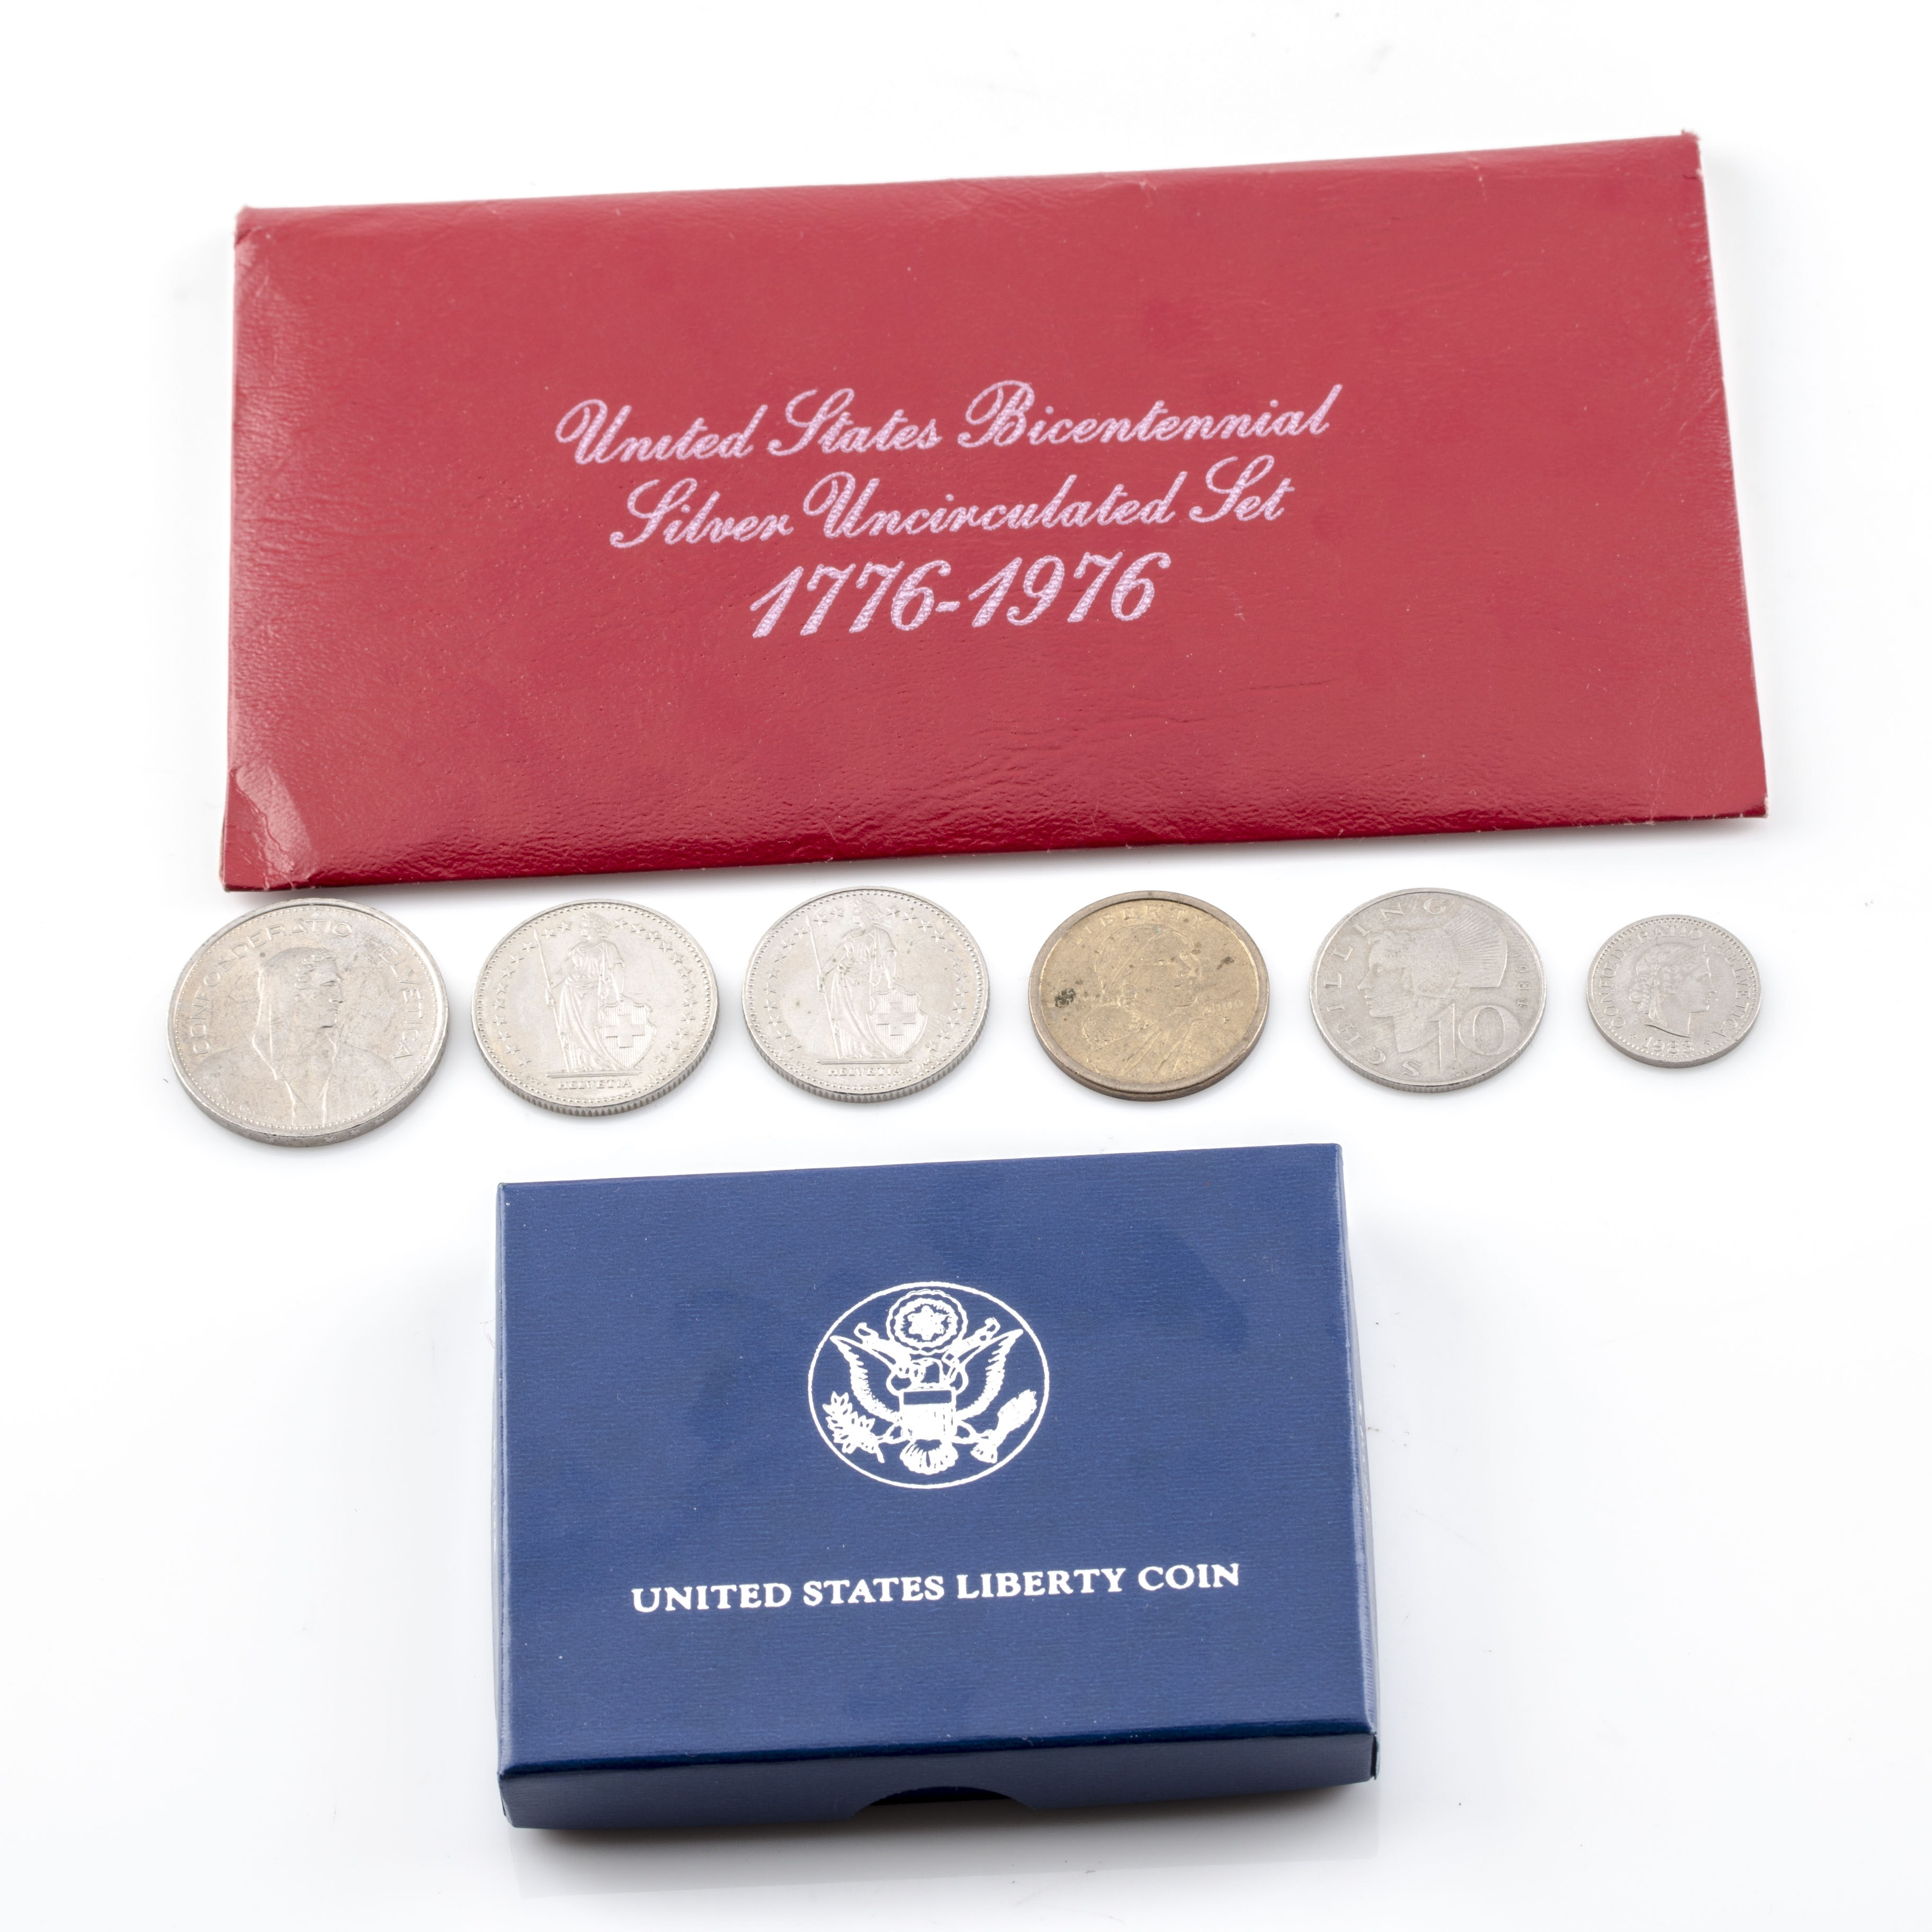 U.S. Commemorative Silver Coins and Foreign Coins